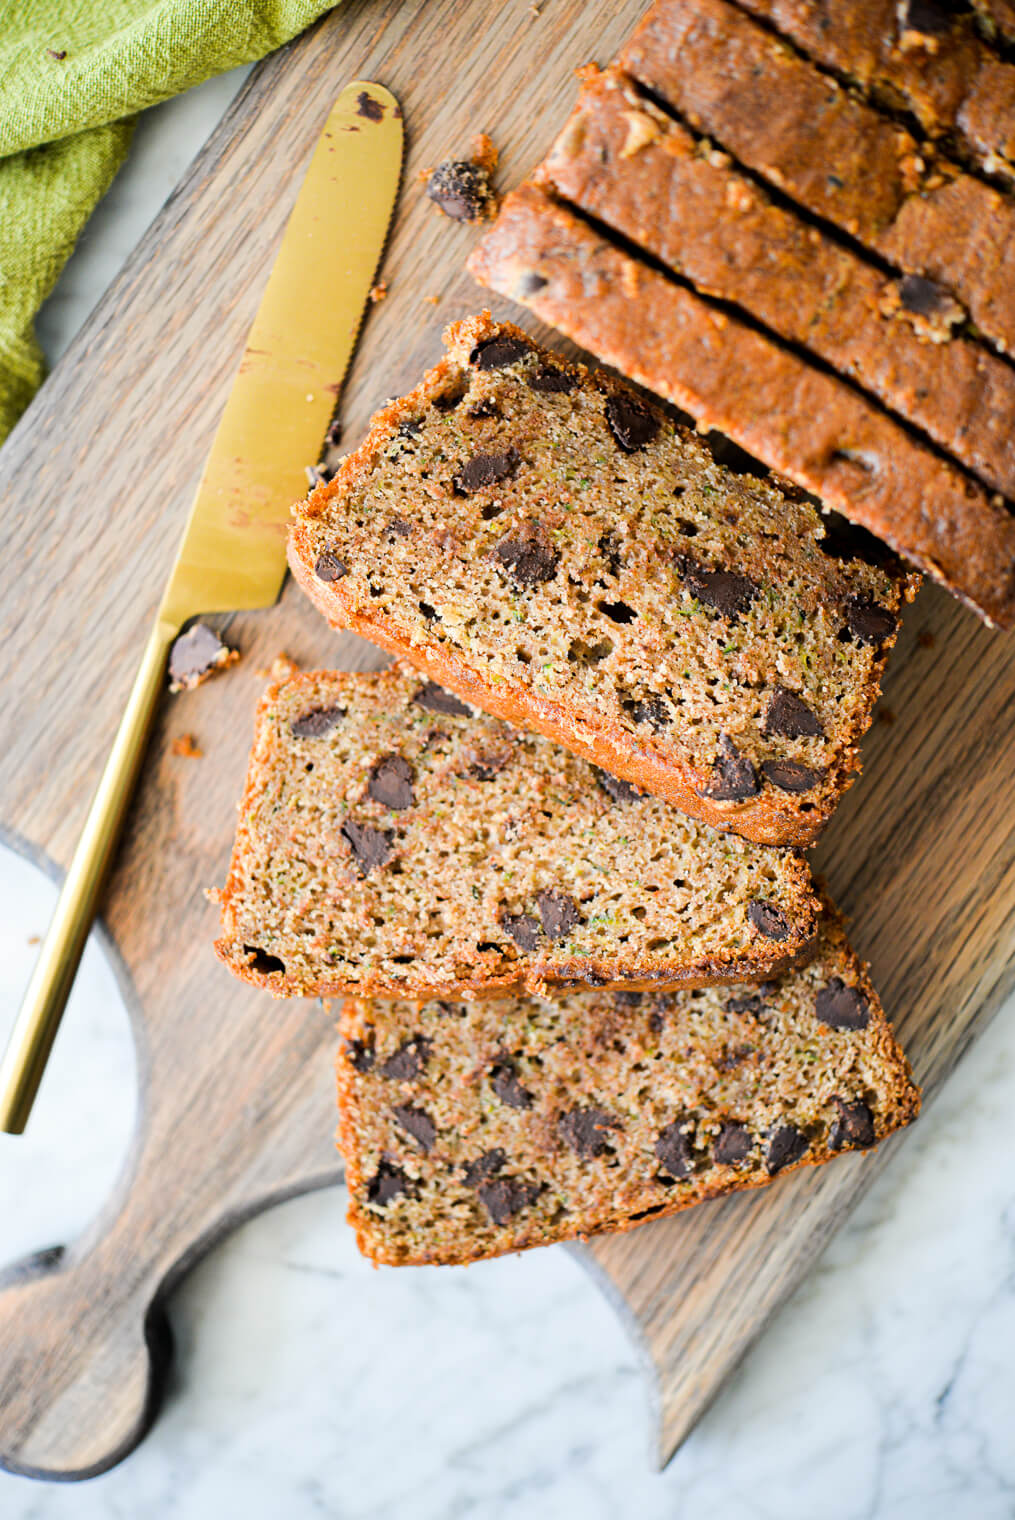 a batch of sliced chocolate chip zucchini bread laying on a wooden cutting board next to a brass butter knife on a marble surface